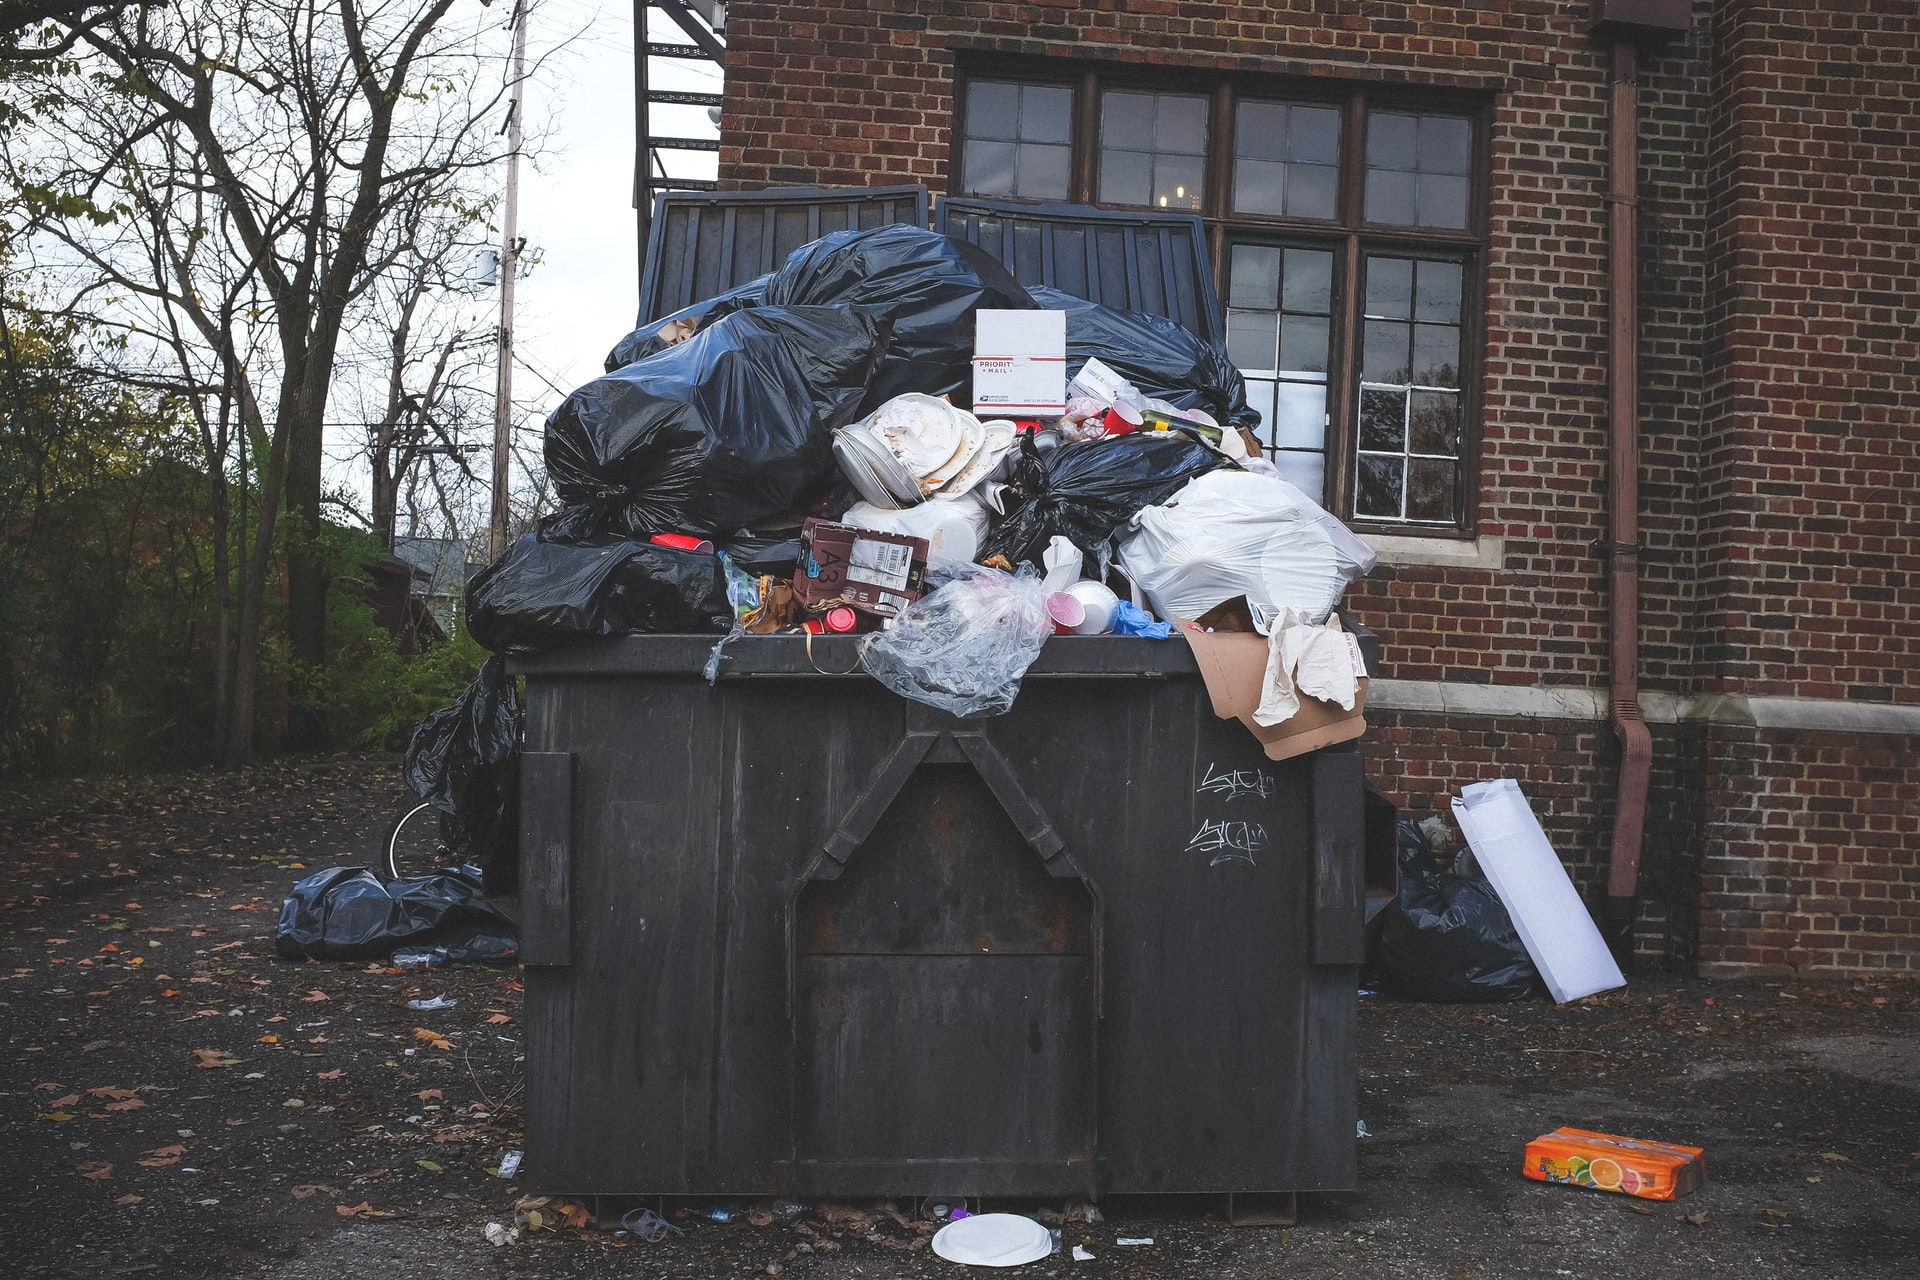 A large black bin overflowing with rubbish, including bin bags, pizza cartons and single-use cups and plates. The bin is in front of a brick house.